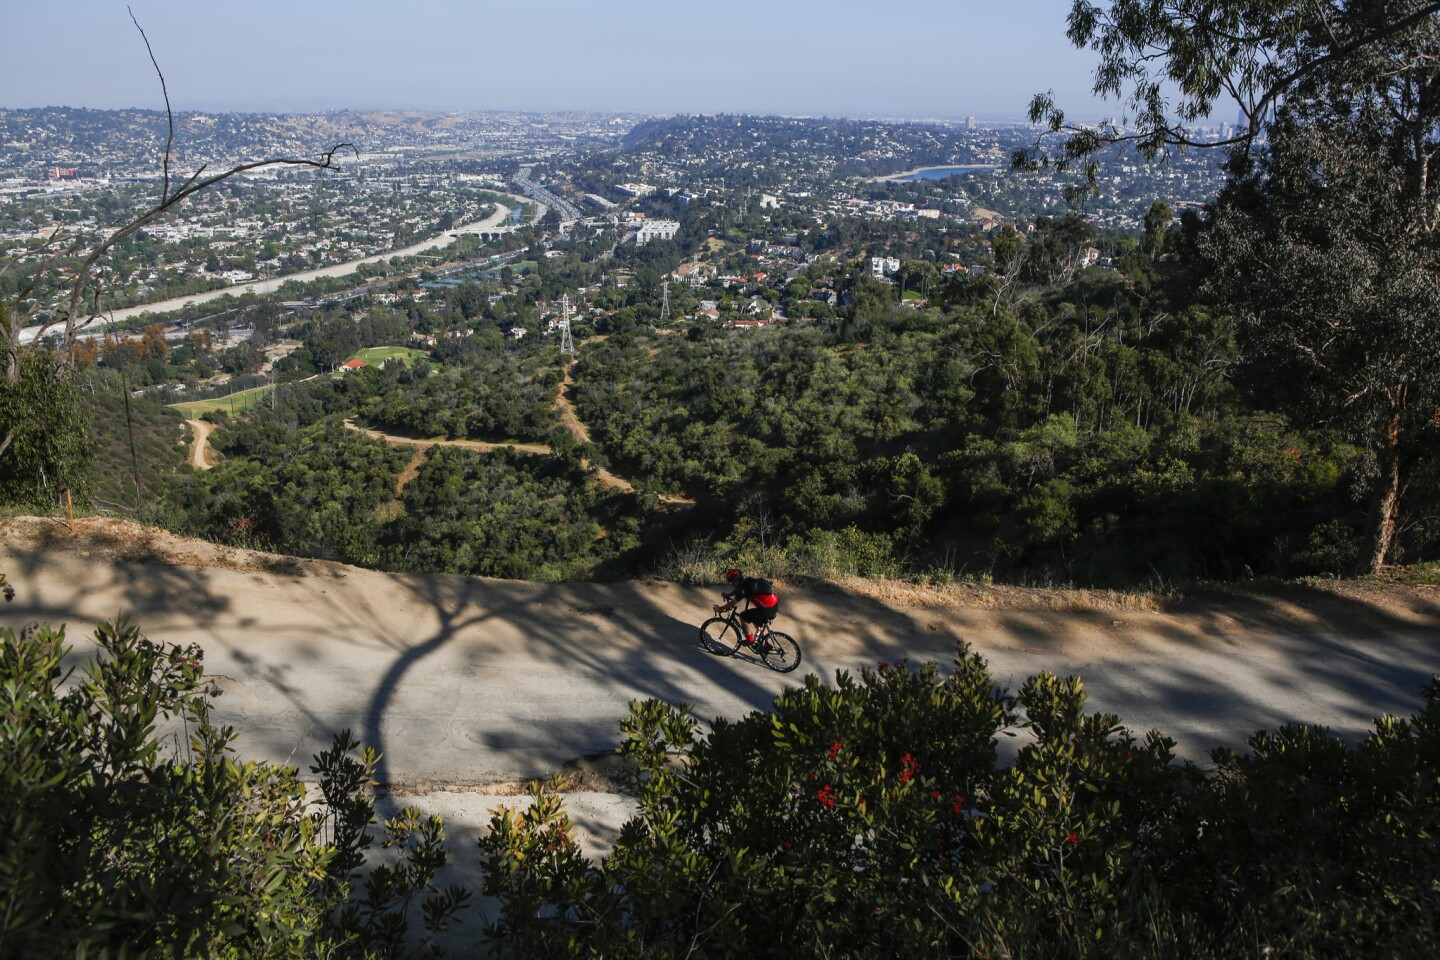 This unique trail located south of Griffith Park holds spectacular views of cities, bikers and hikers.